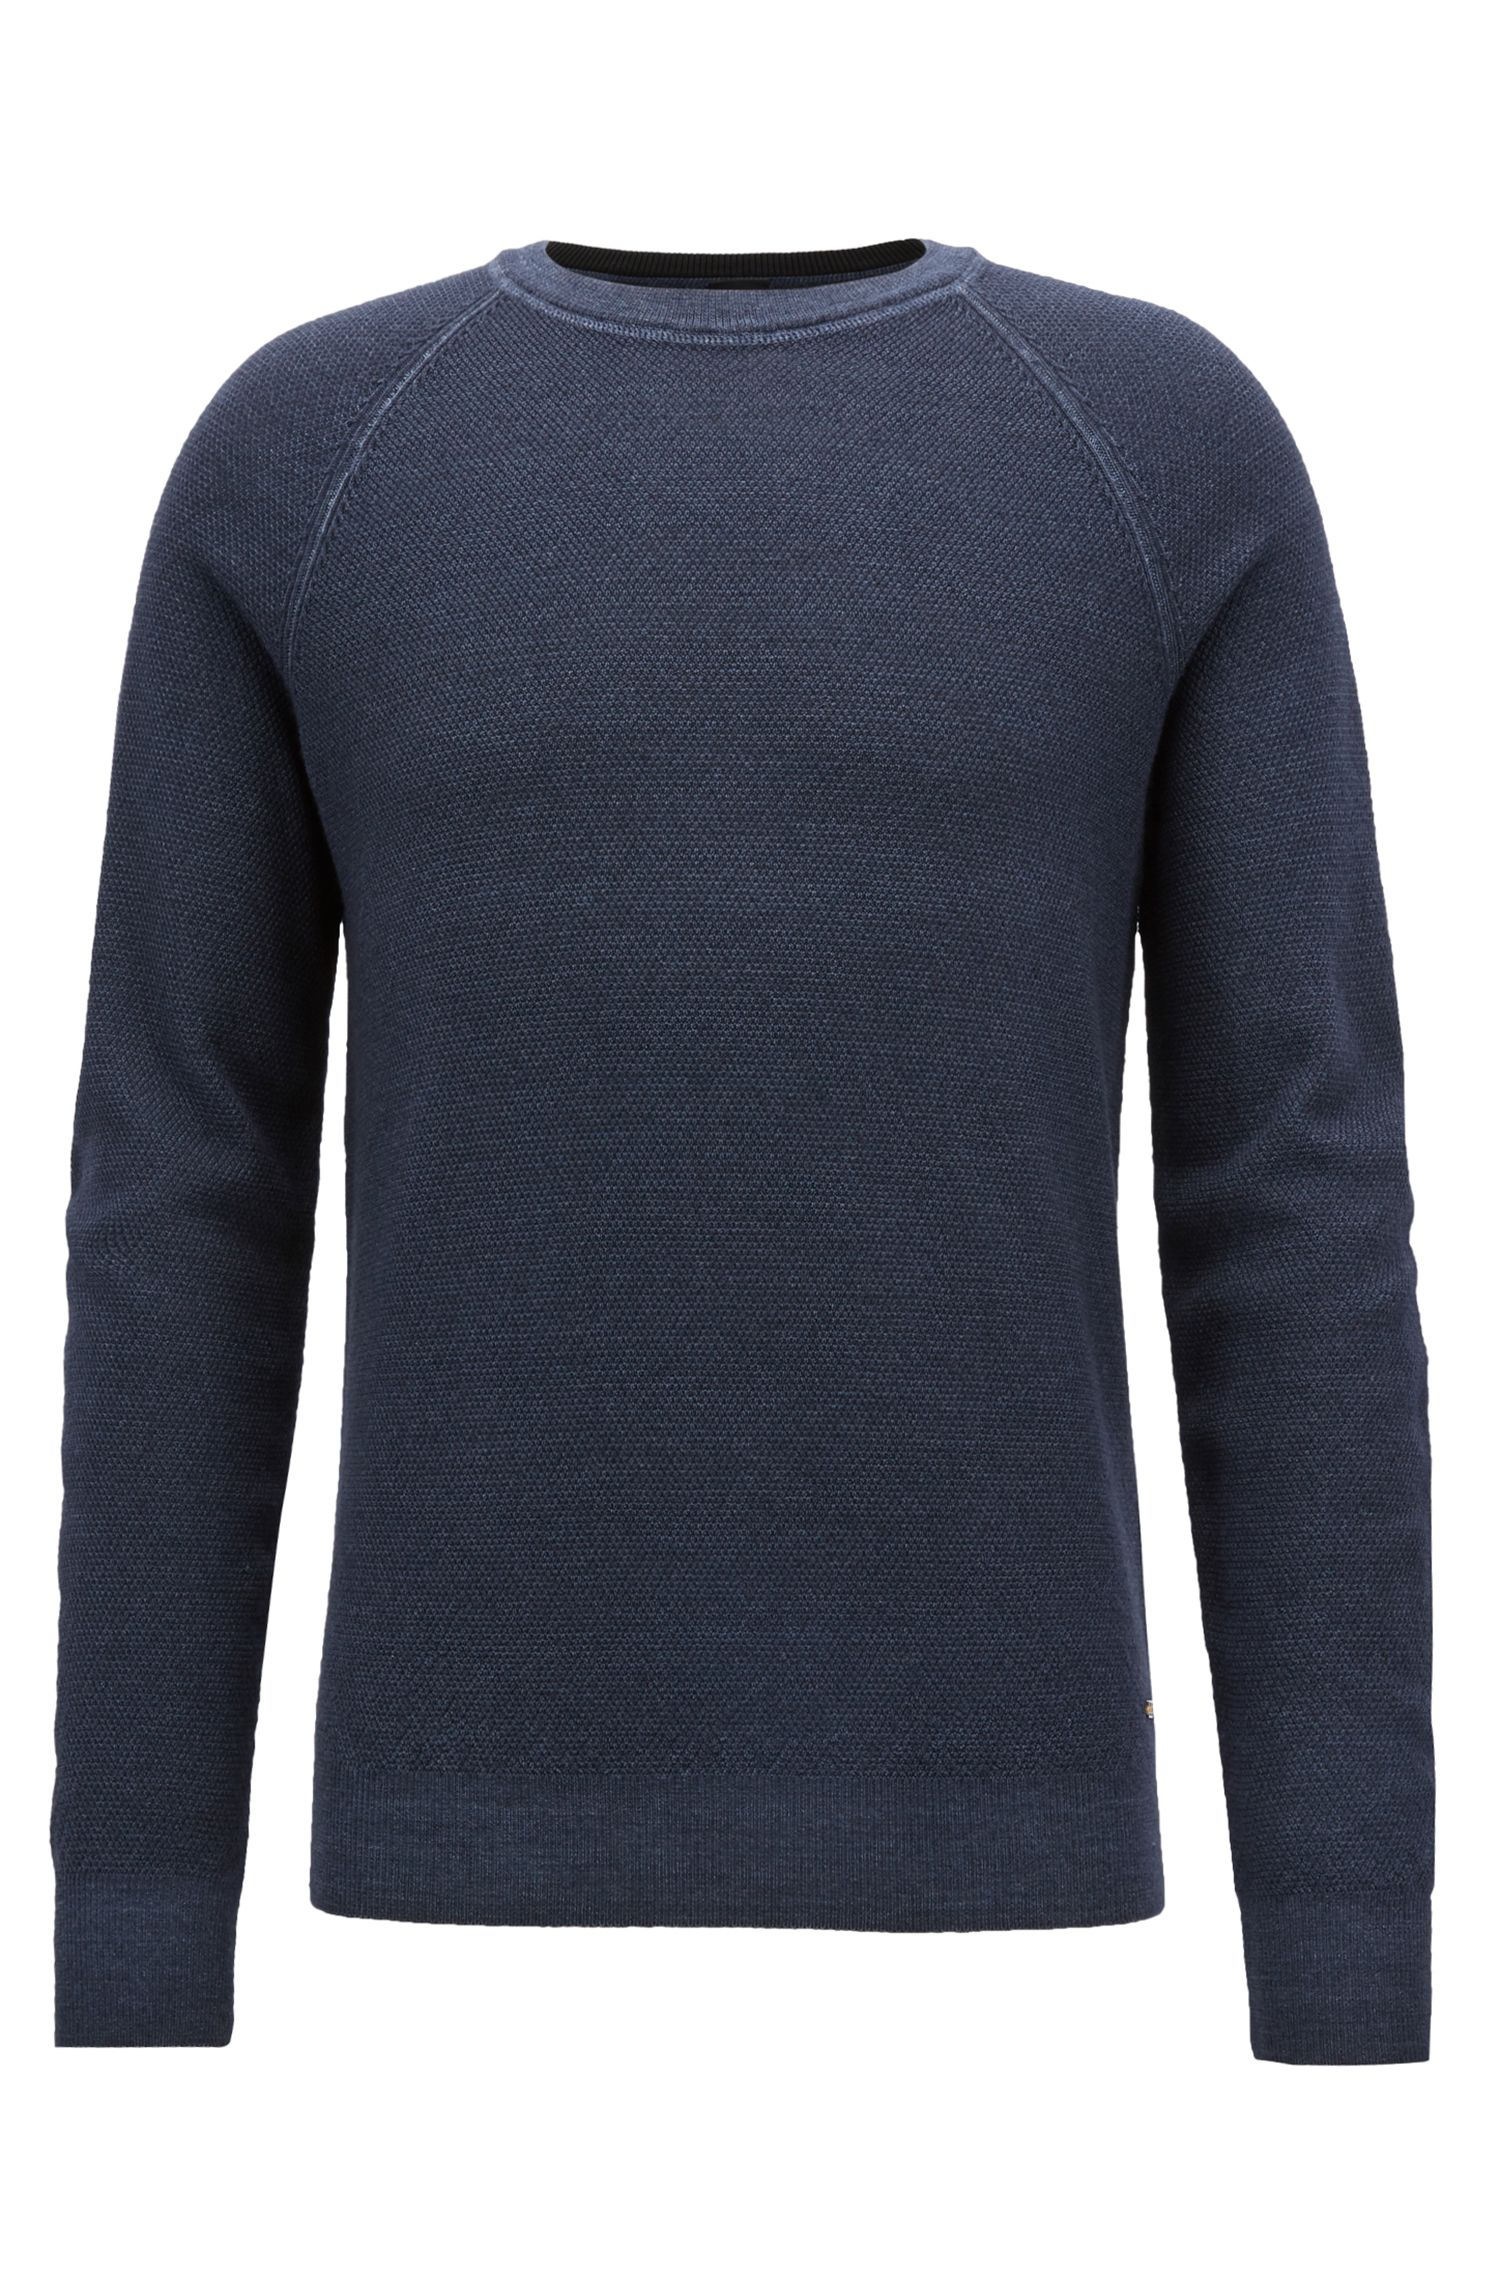 Crew-neck sweater in lightweight merino wool piqué, Dark Blue